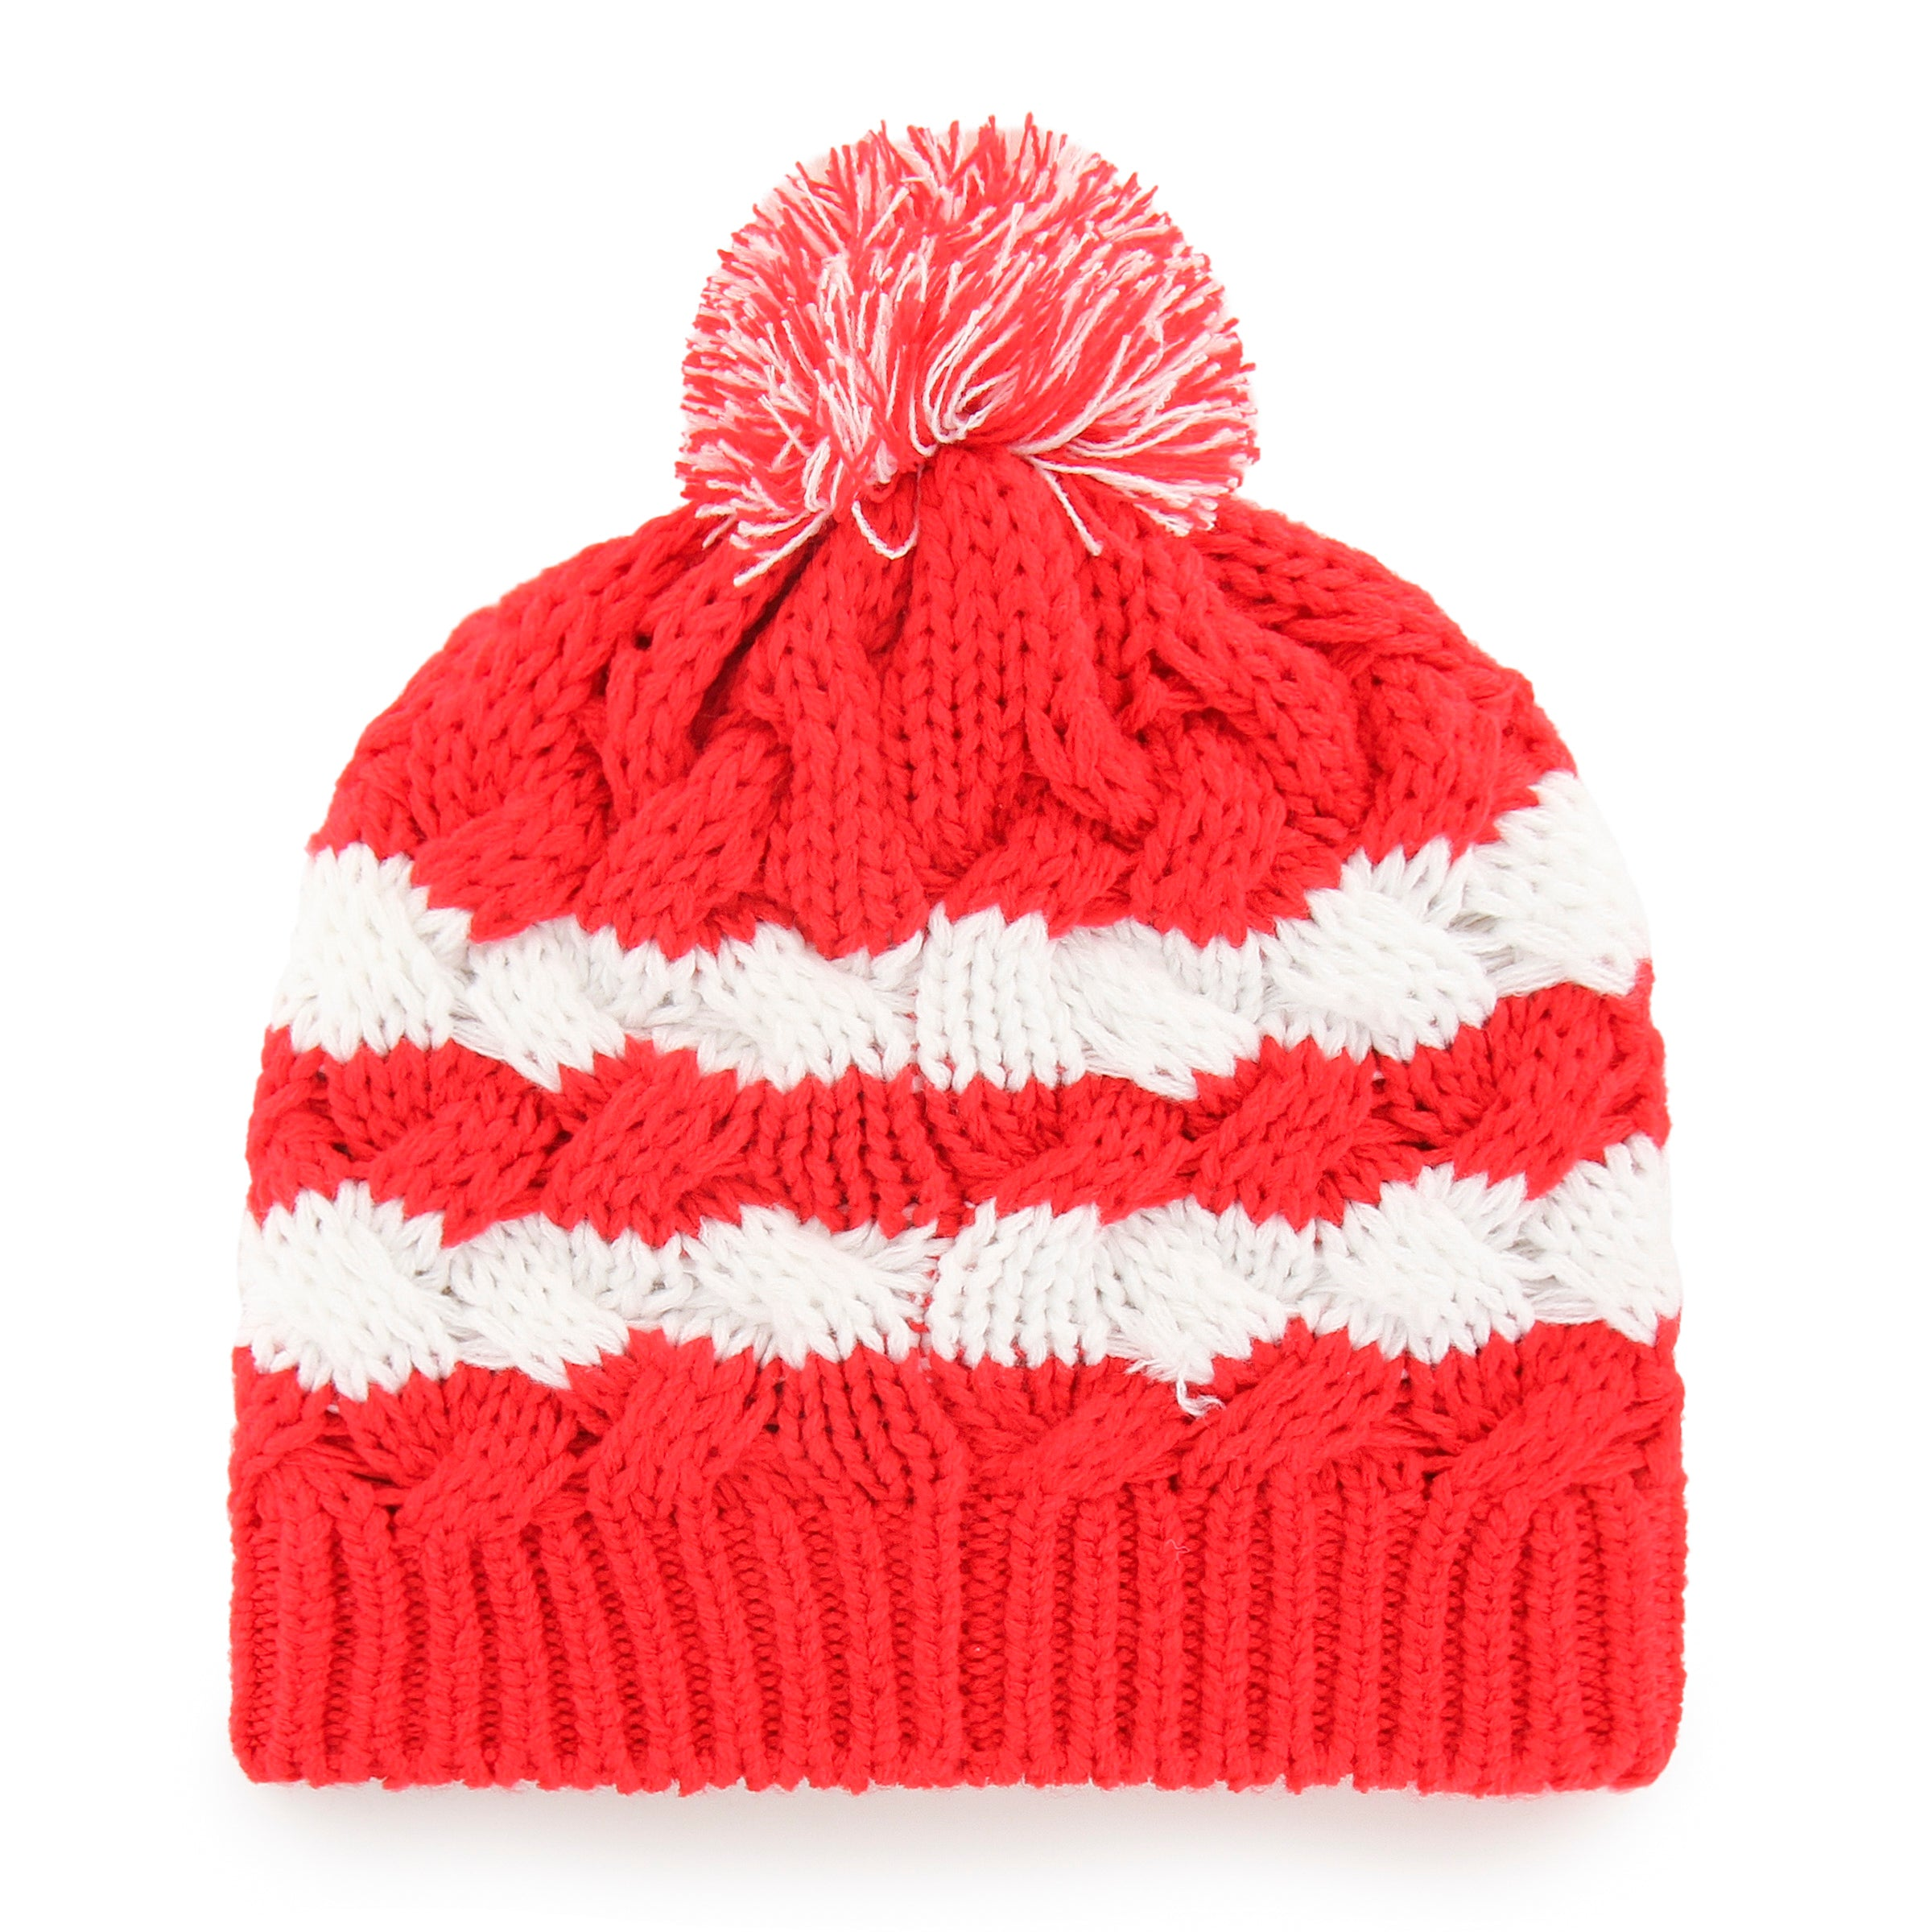 NFFC Top Sail '47 Beanie - Women's